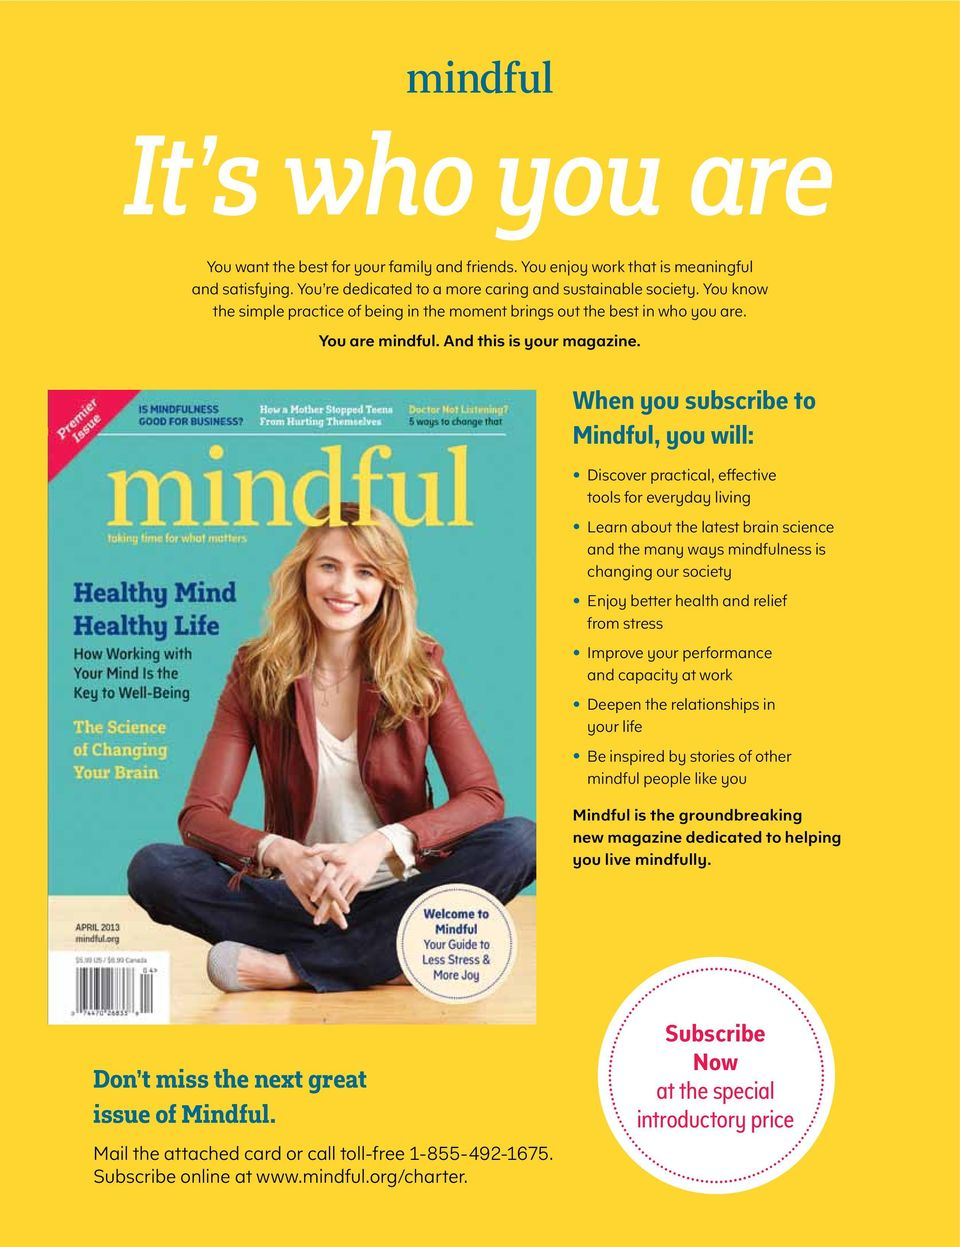 When you subscribe to Mindful, you will: Discover practical, effective tools for everyday living Learn about the latest brain science and the many ways mindfulness is changing our society Enjoy